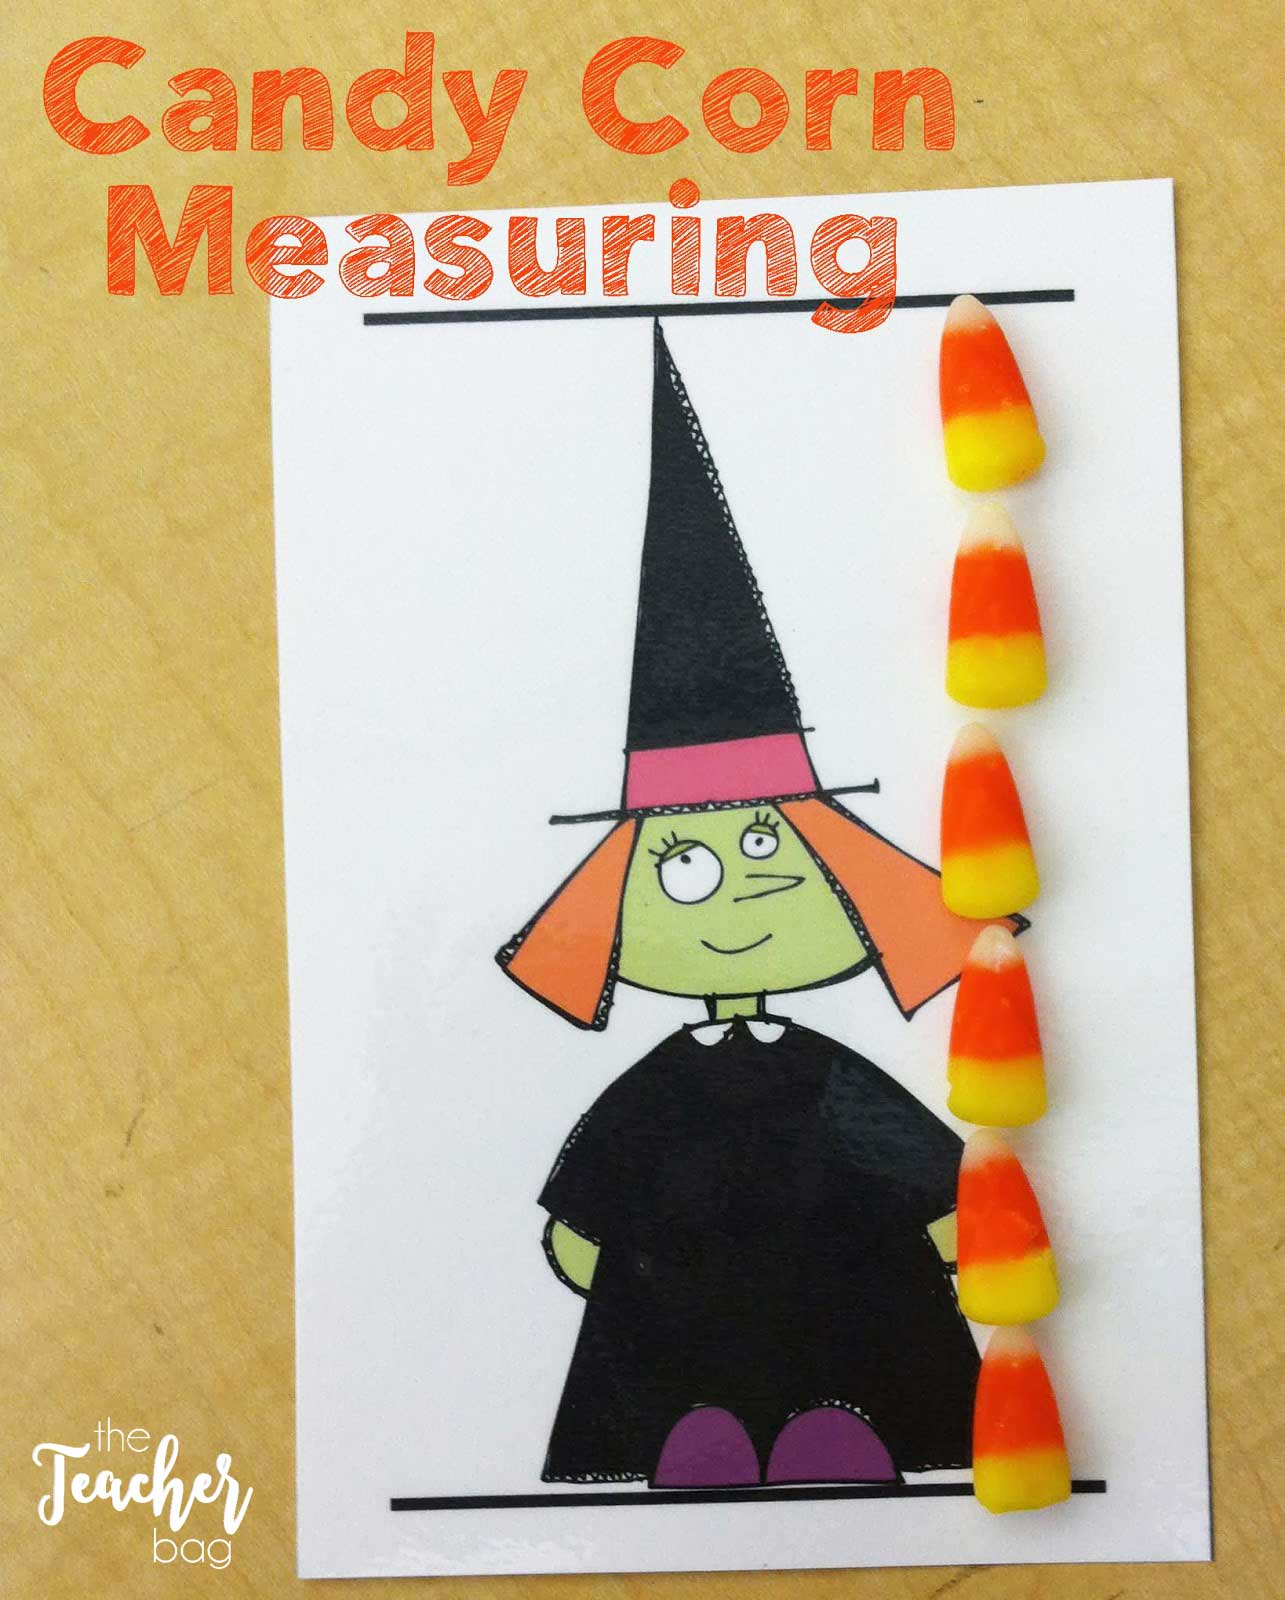 Use candy corns for nonstandard measuring